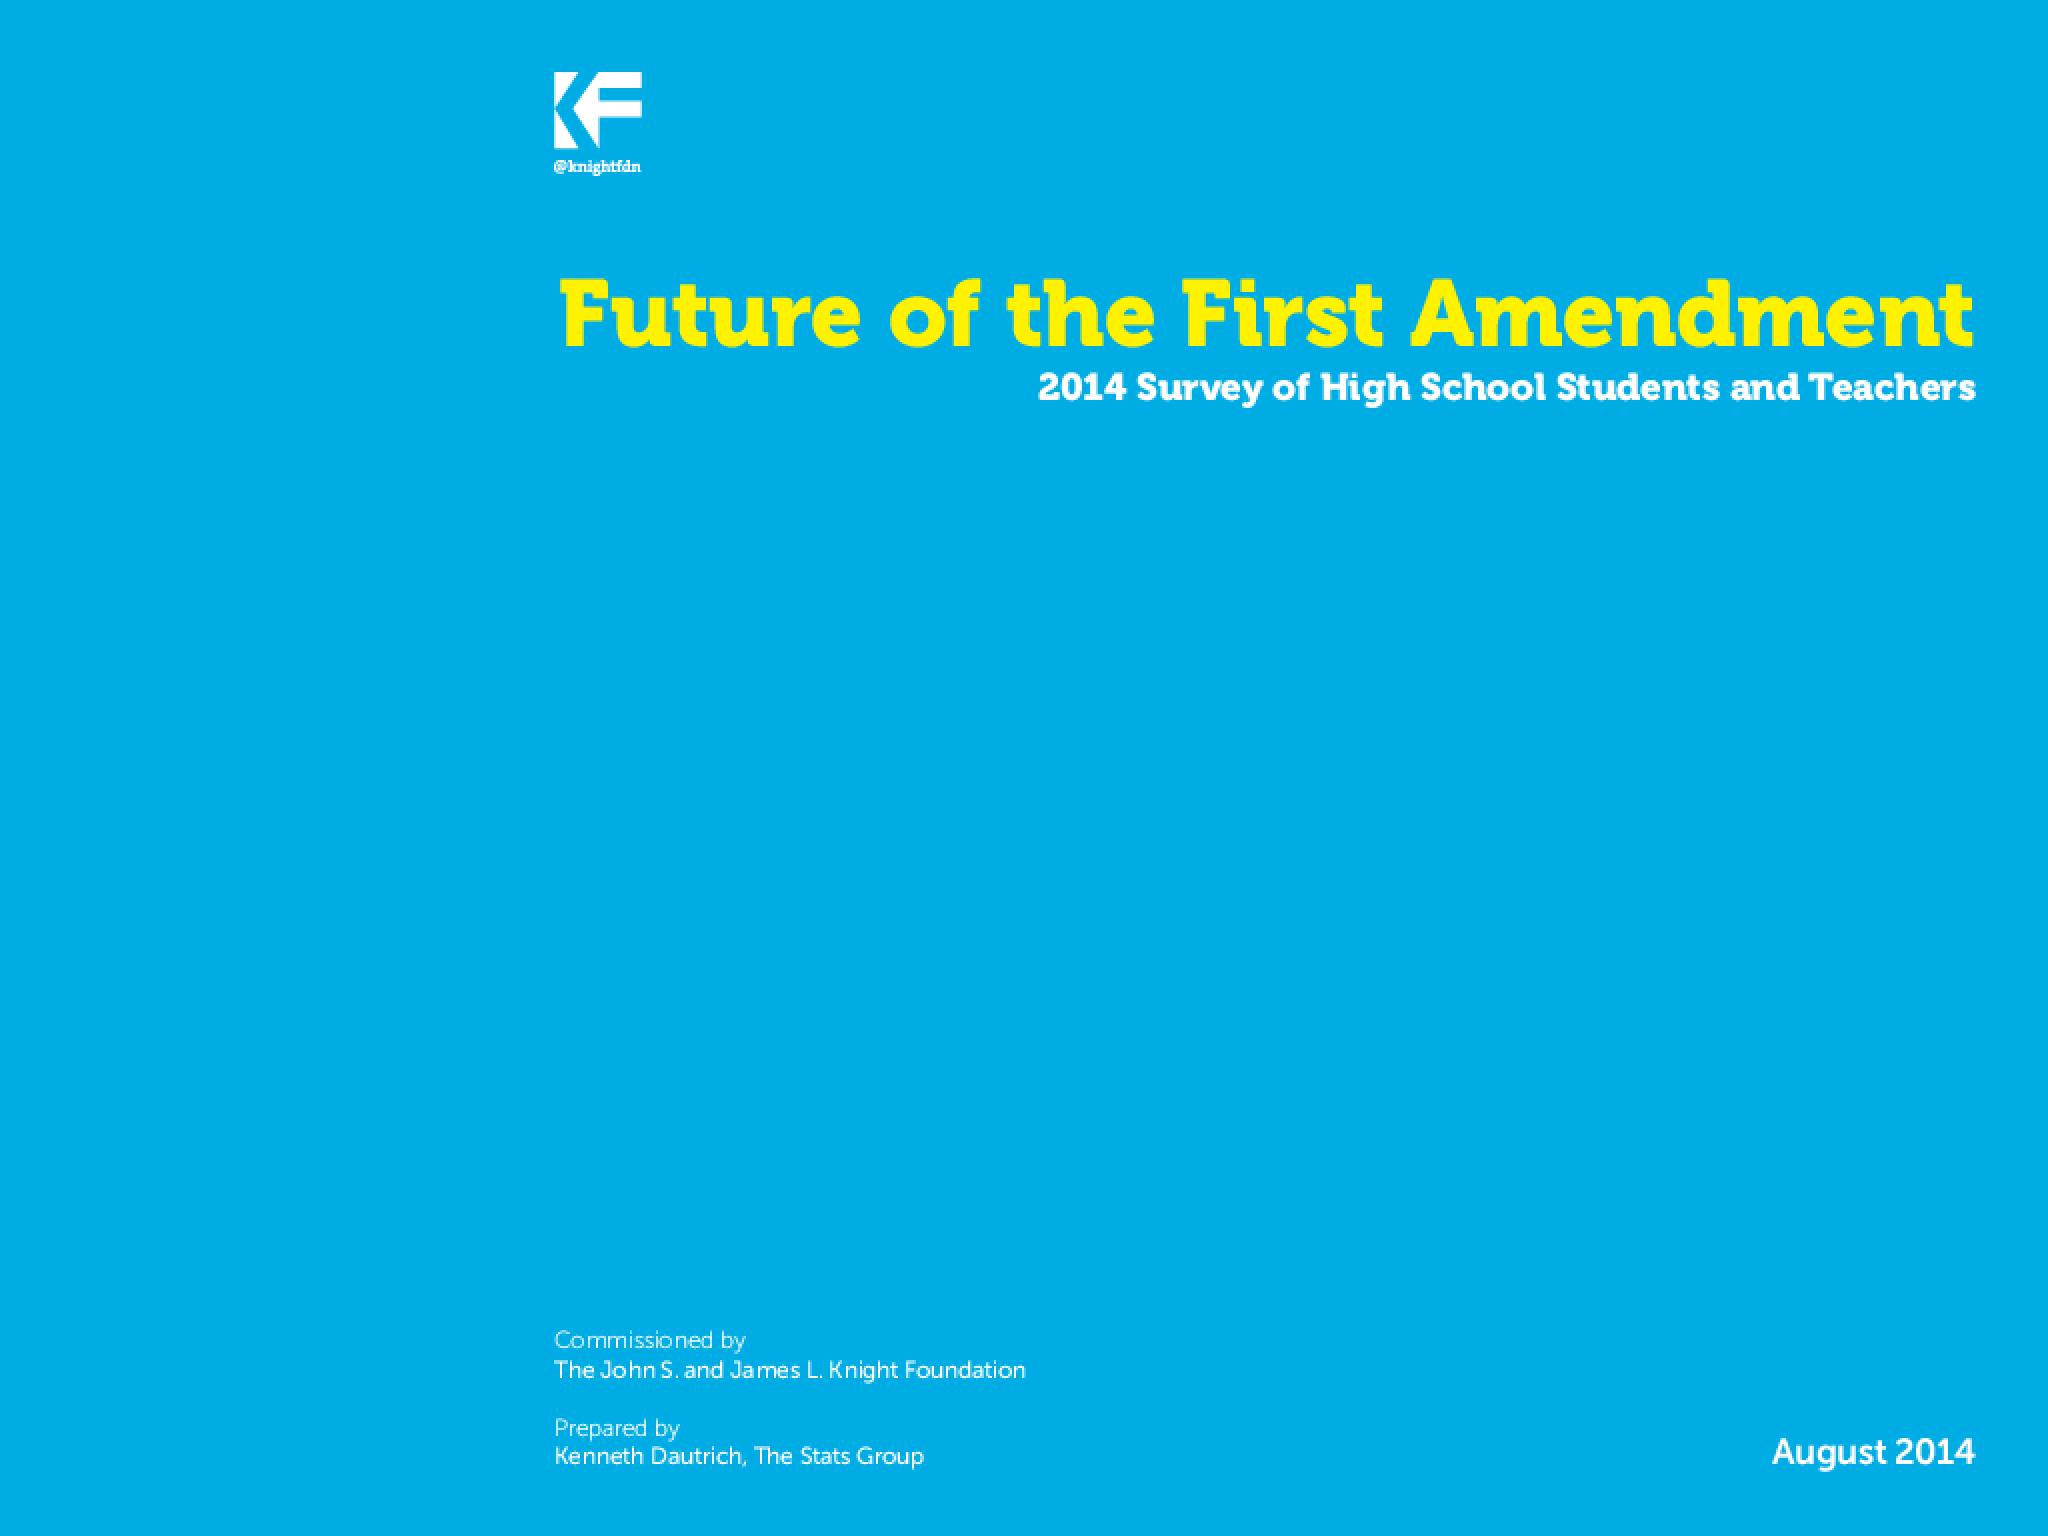 Future of the First Amendment: 2014 Survey of High School Students and Teachers